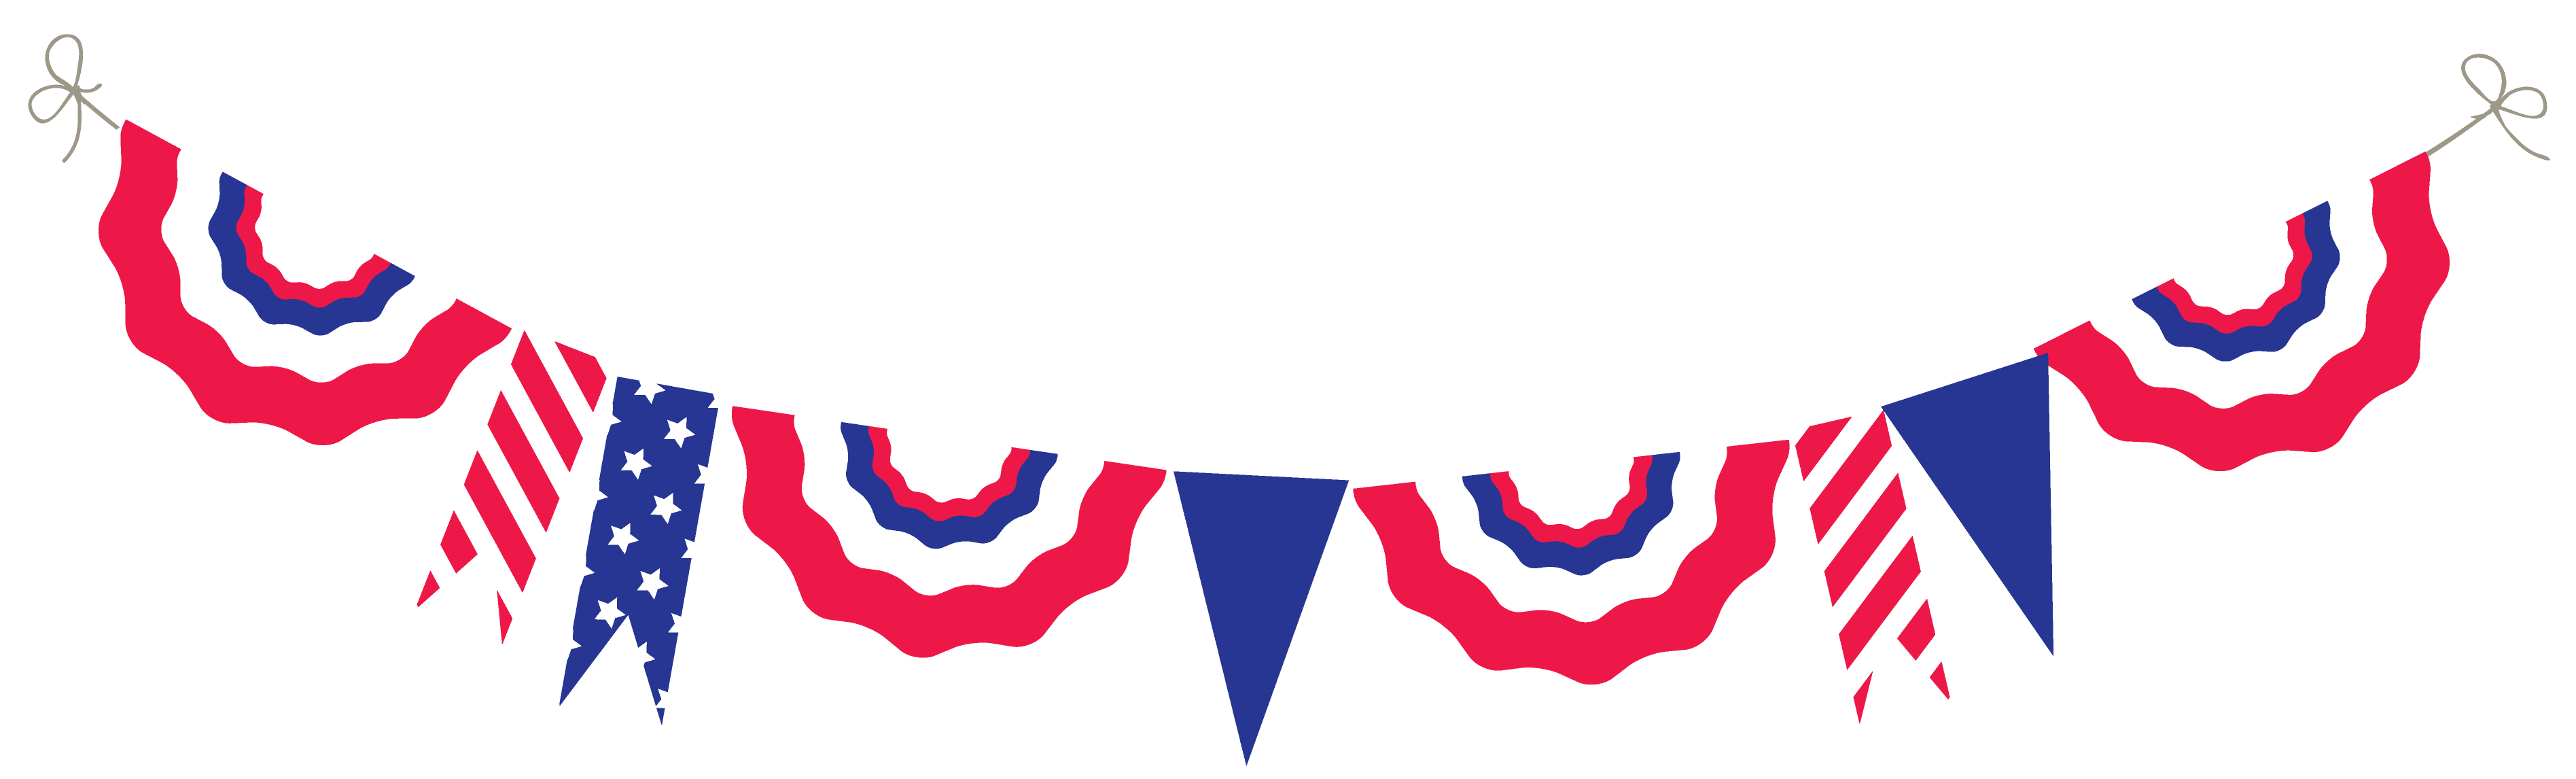 3791x1146 Fourth Of July Fourth Free 4th Clipart Independence Day